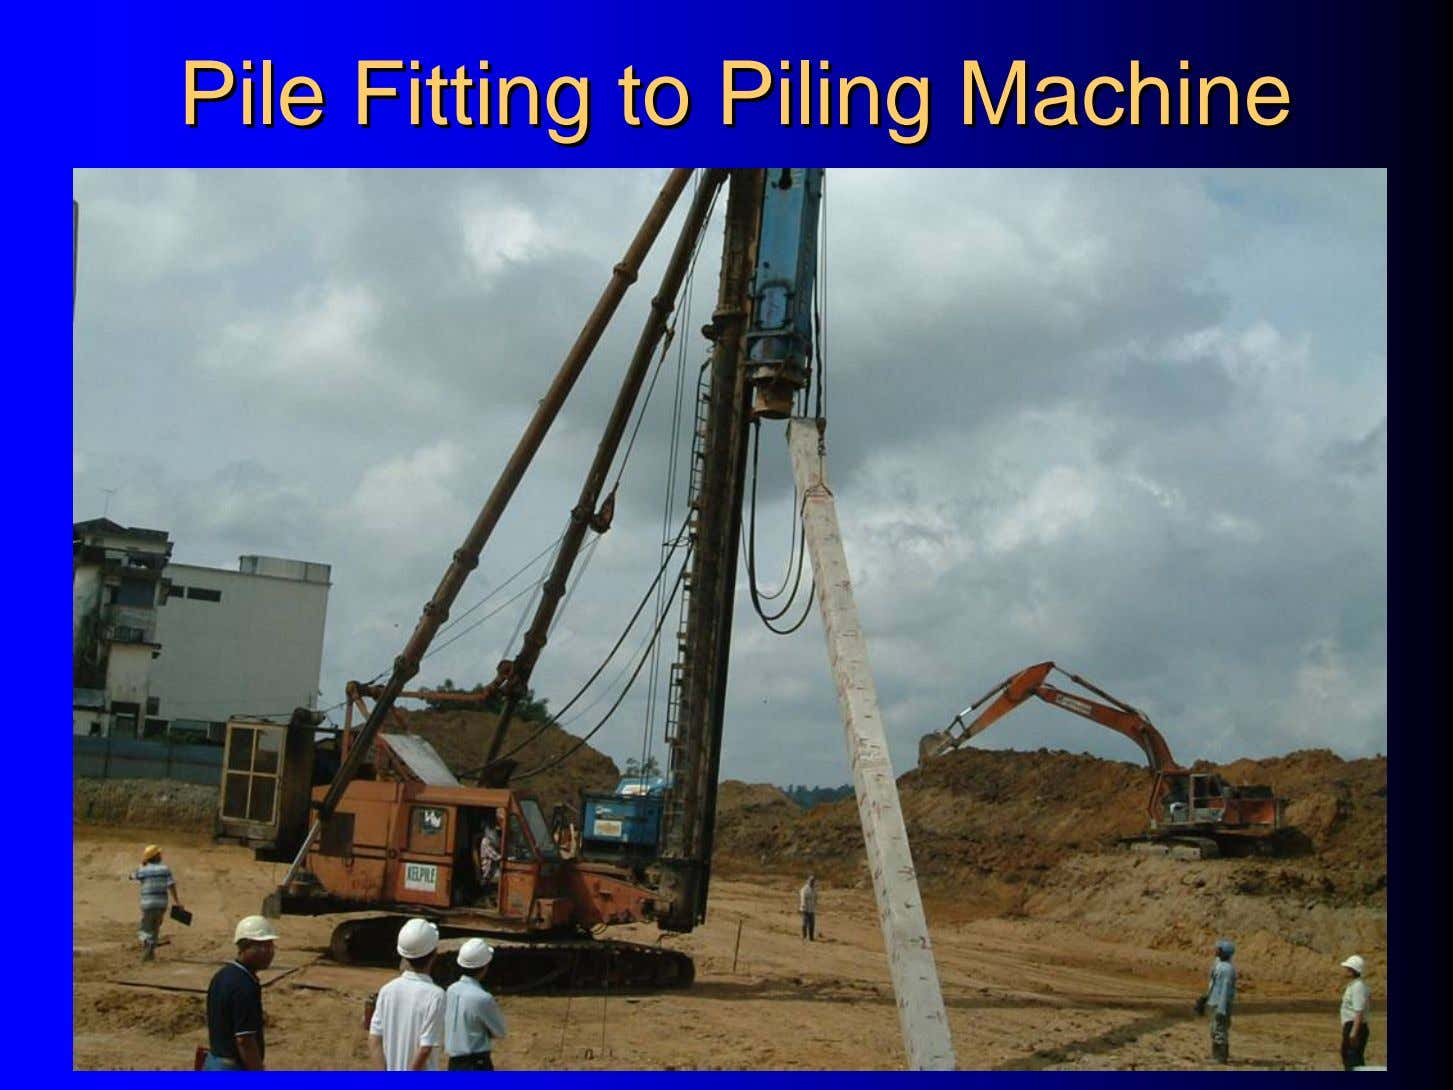 PilePile FittingFitting toto PilingPiling MachineMachine